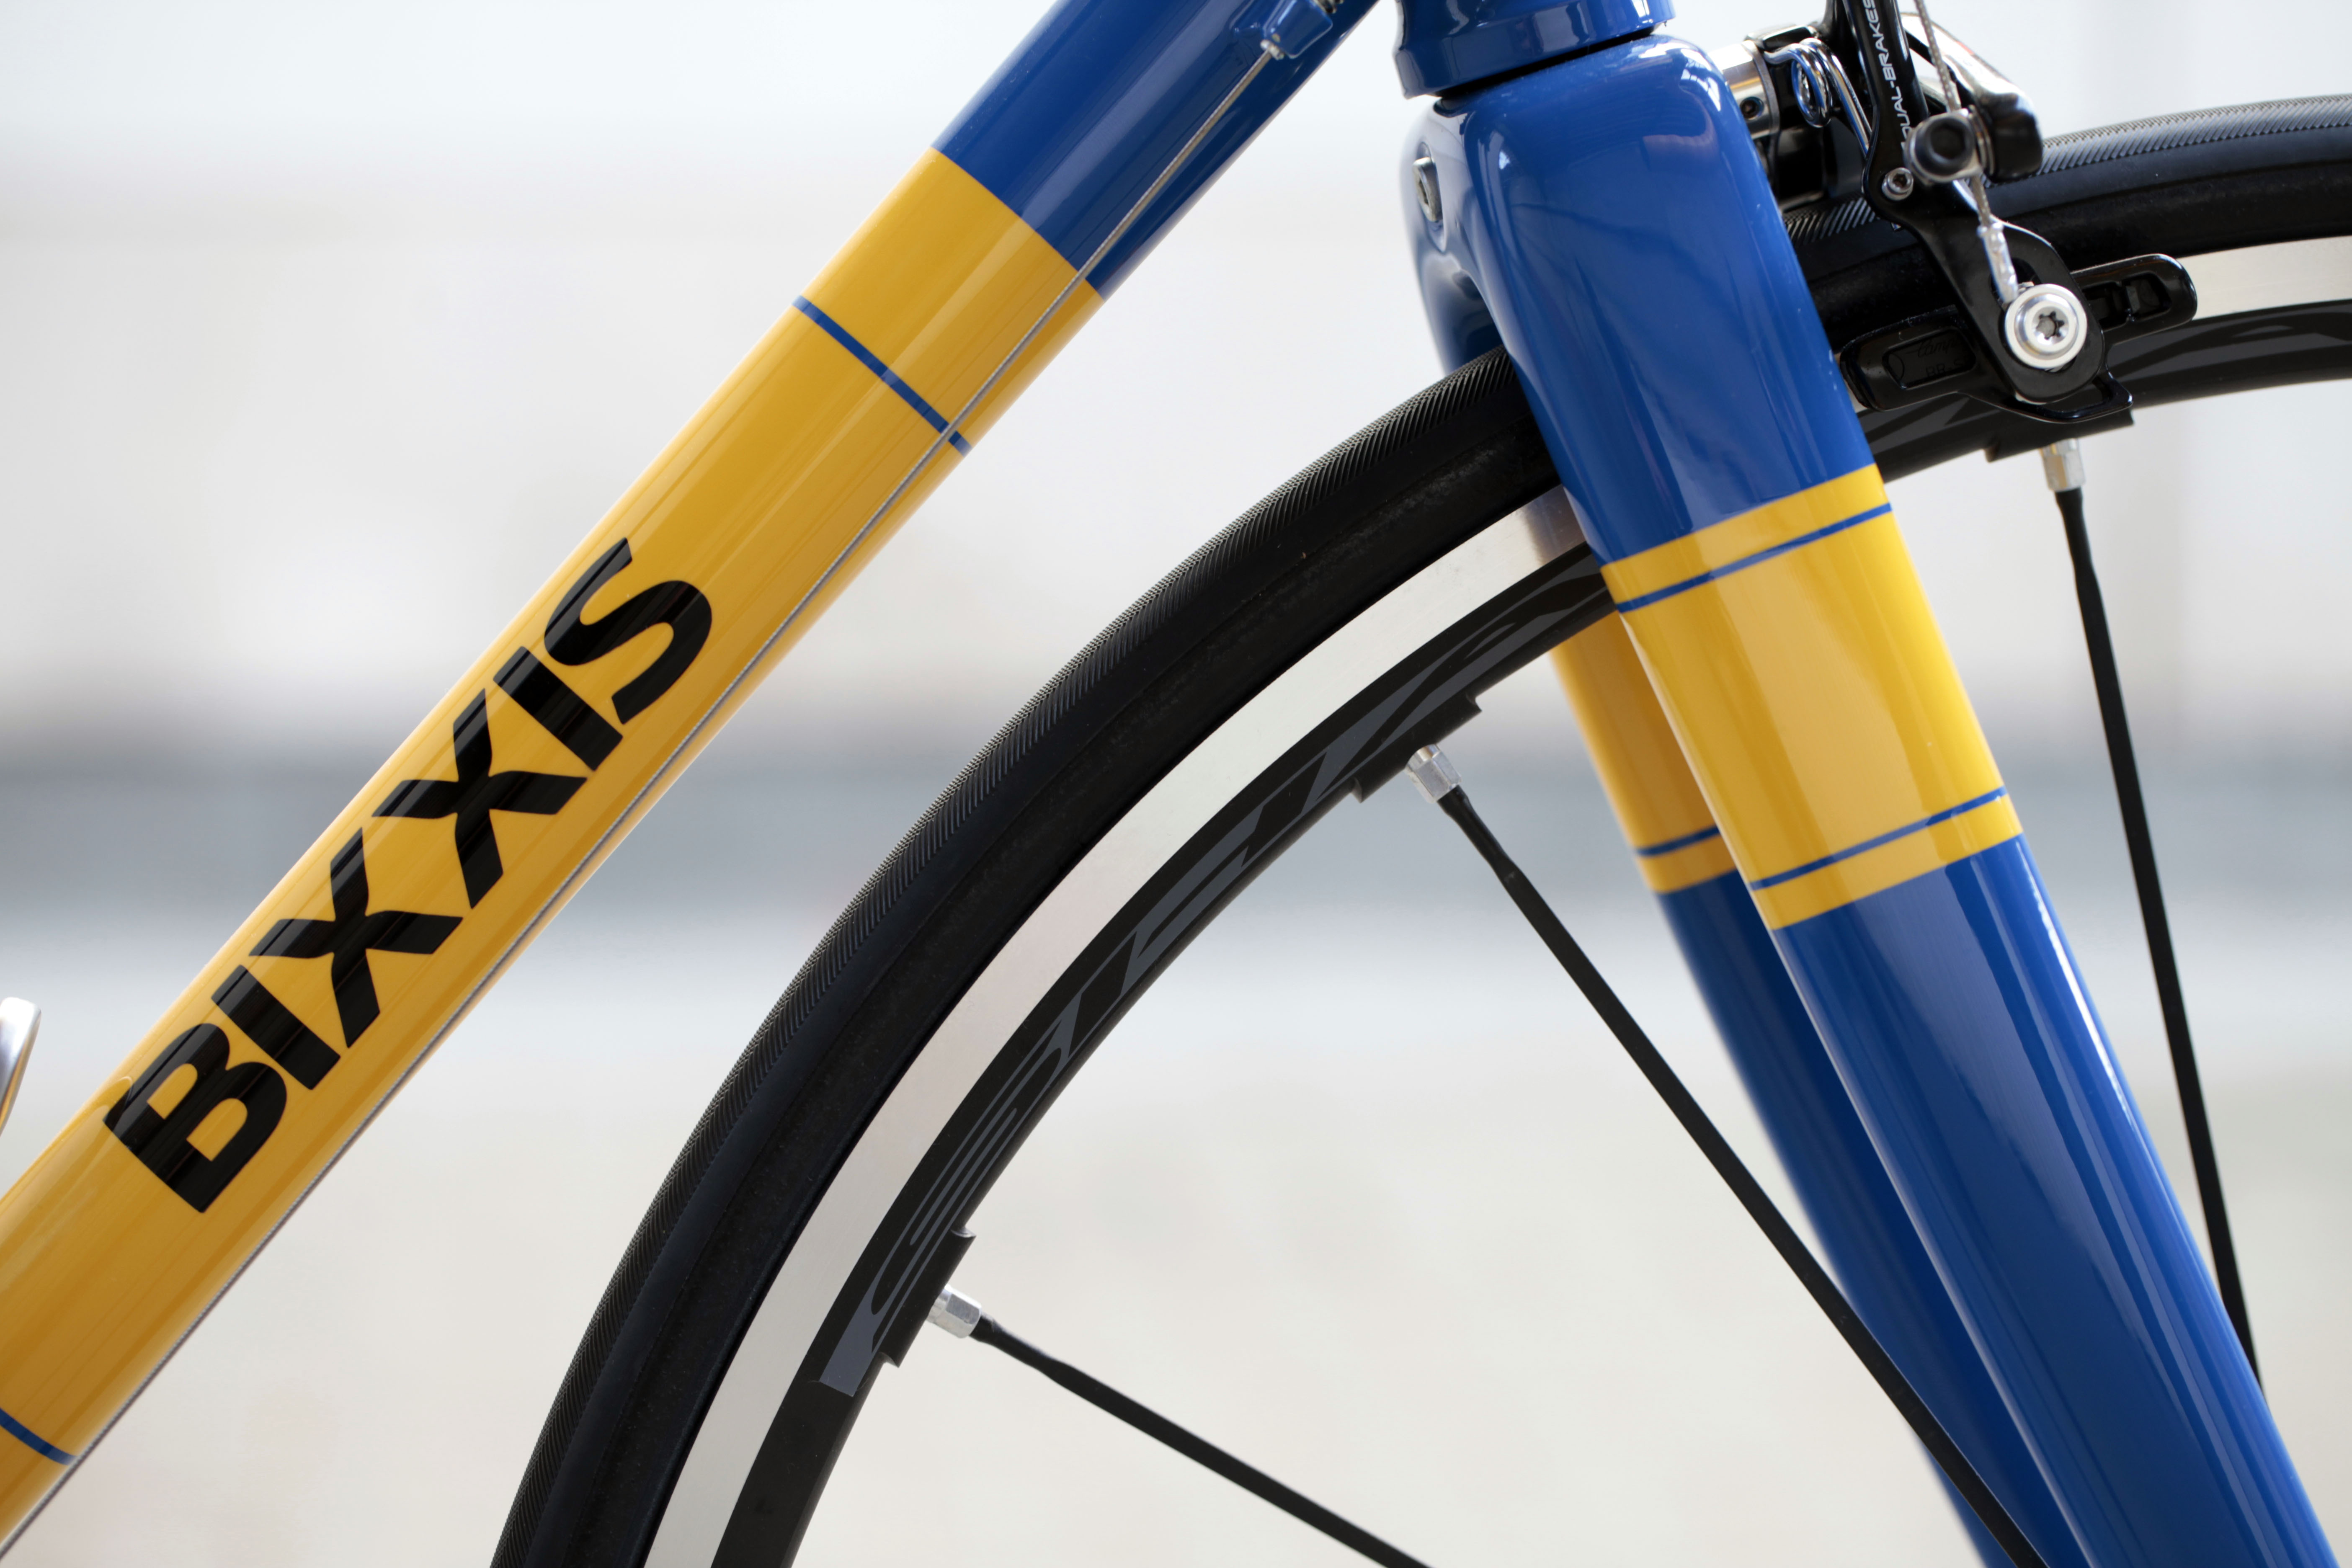 Bixxis Prima, steel frame bicycle